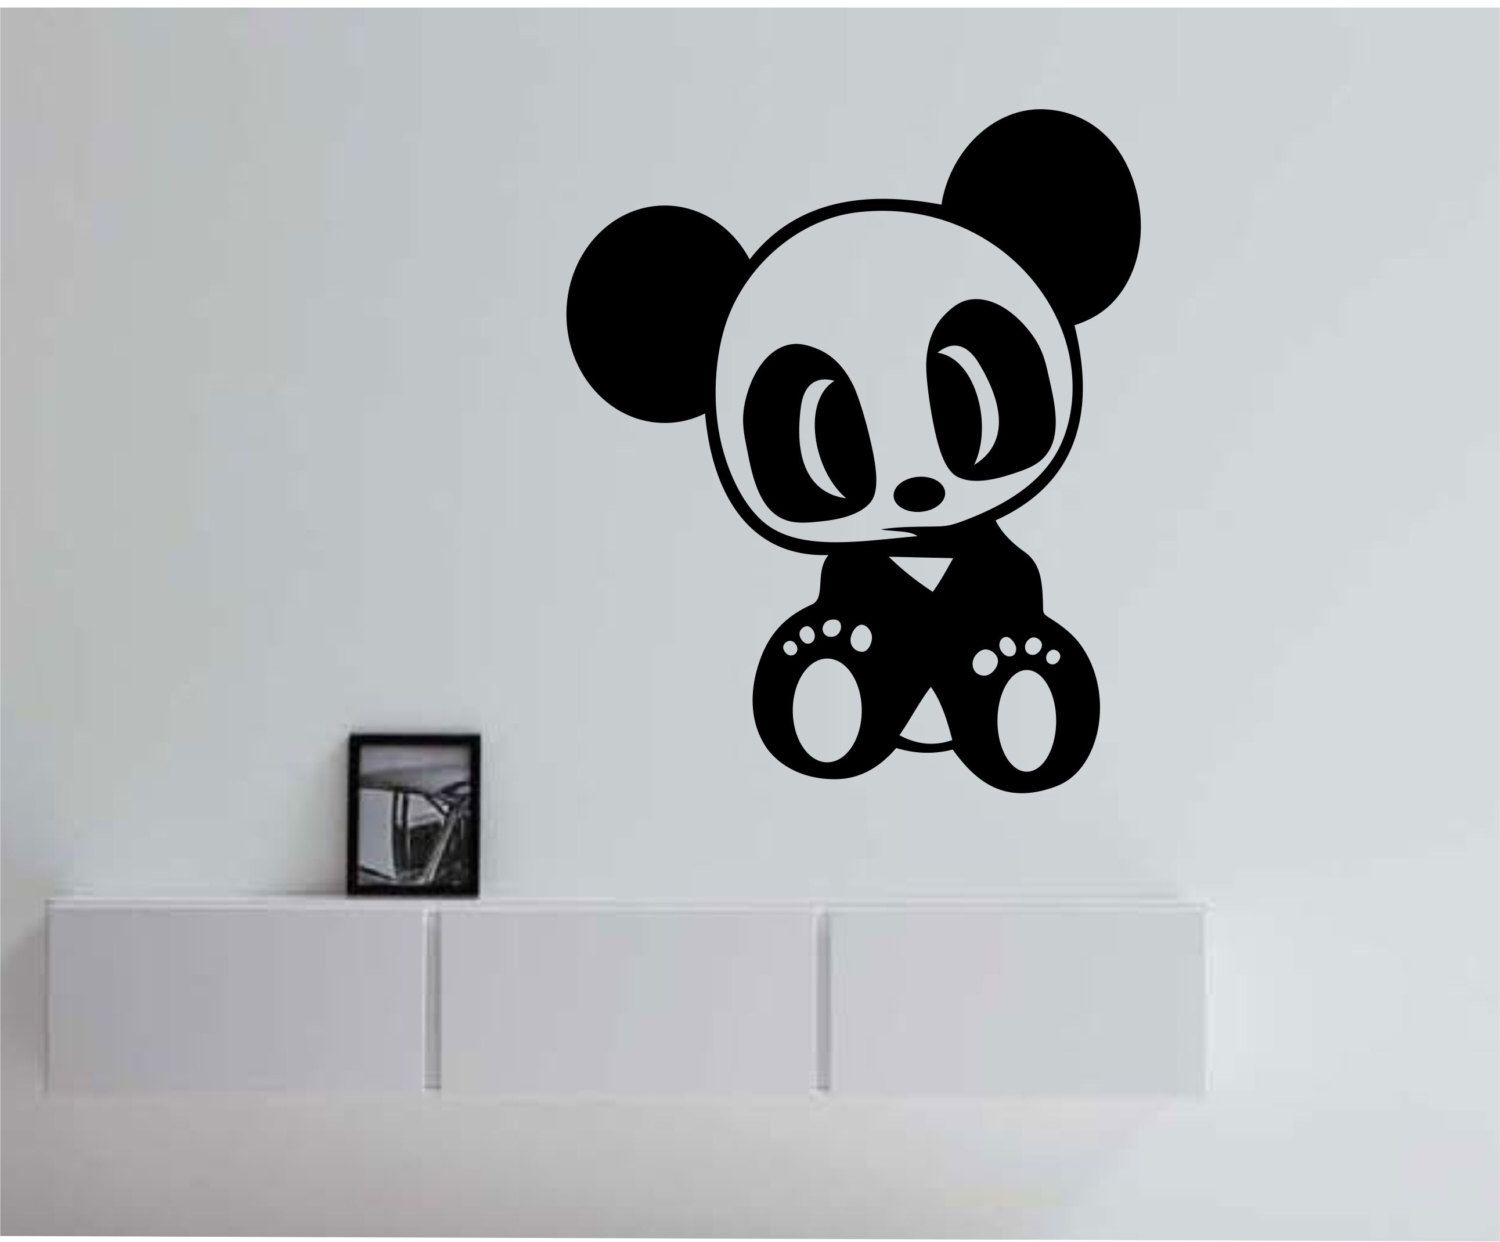 Baby Panda Japan Japanese Animal Vinyl Wall Decal Sticker Art Decor Bedroom Design Mural nature #babypandas